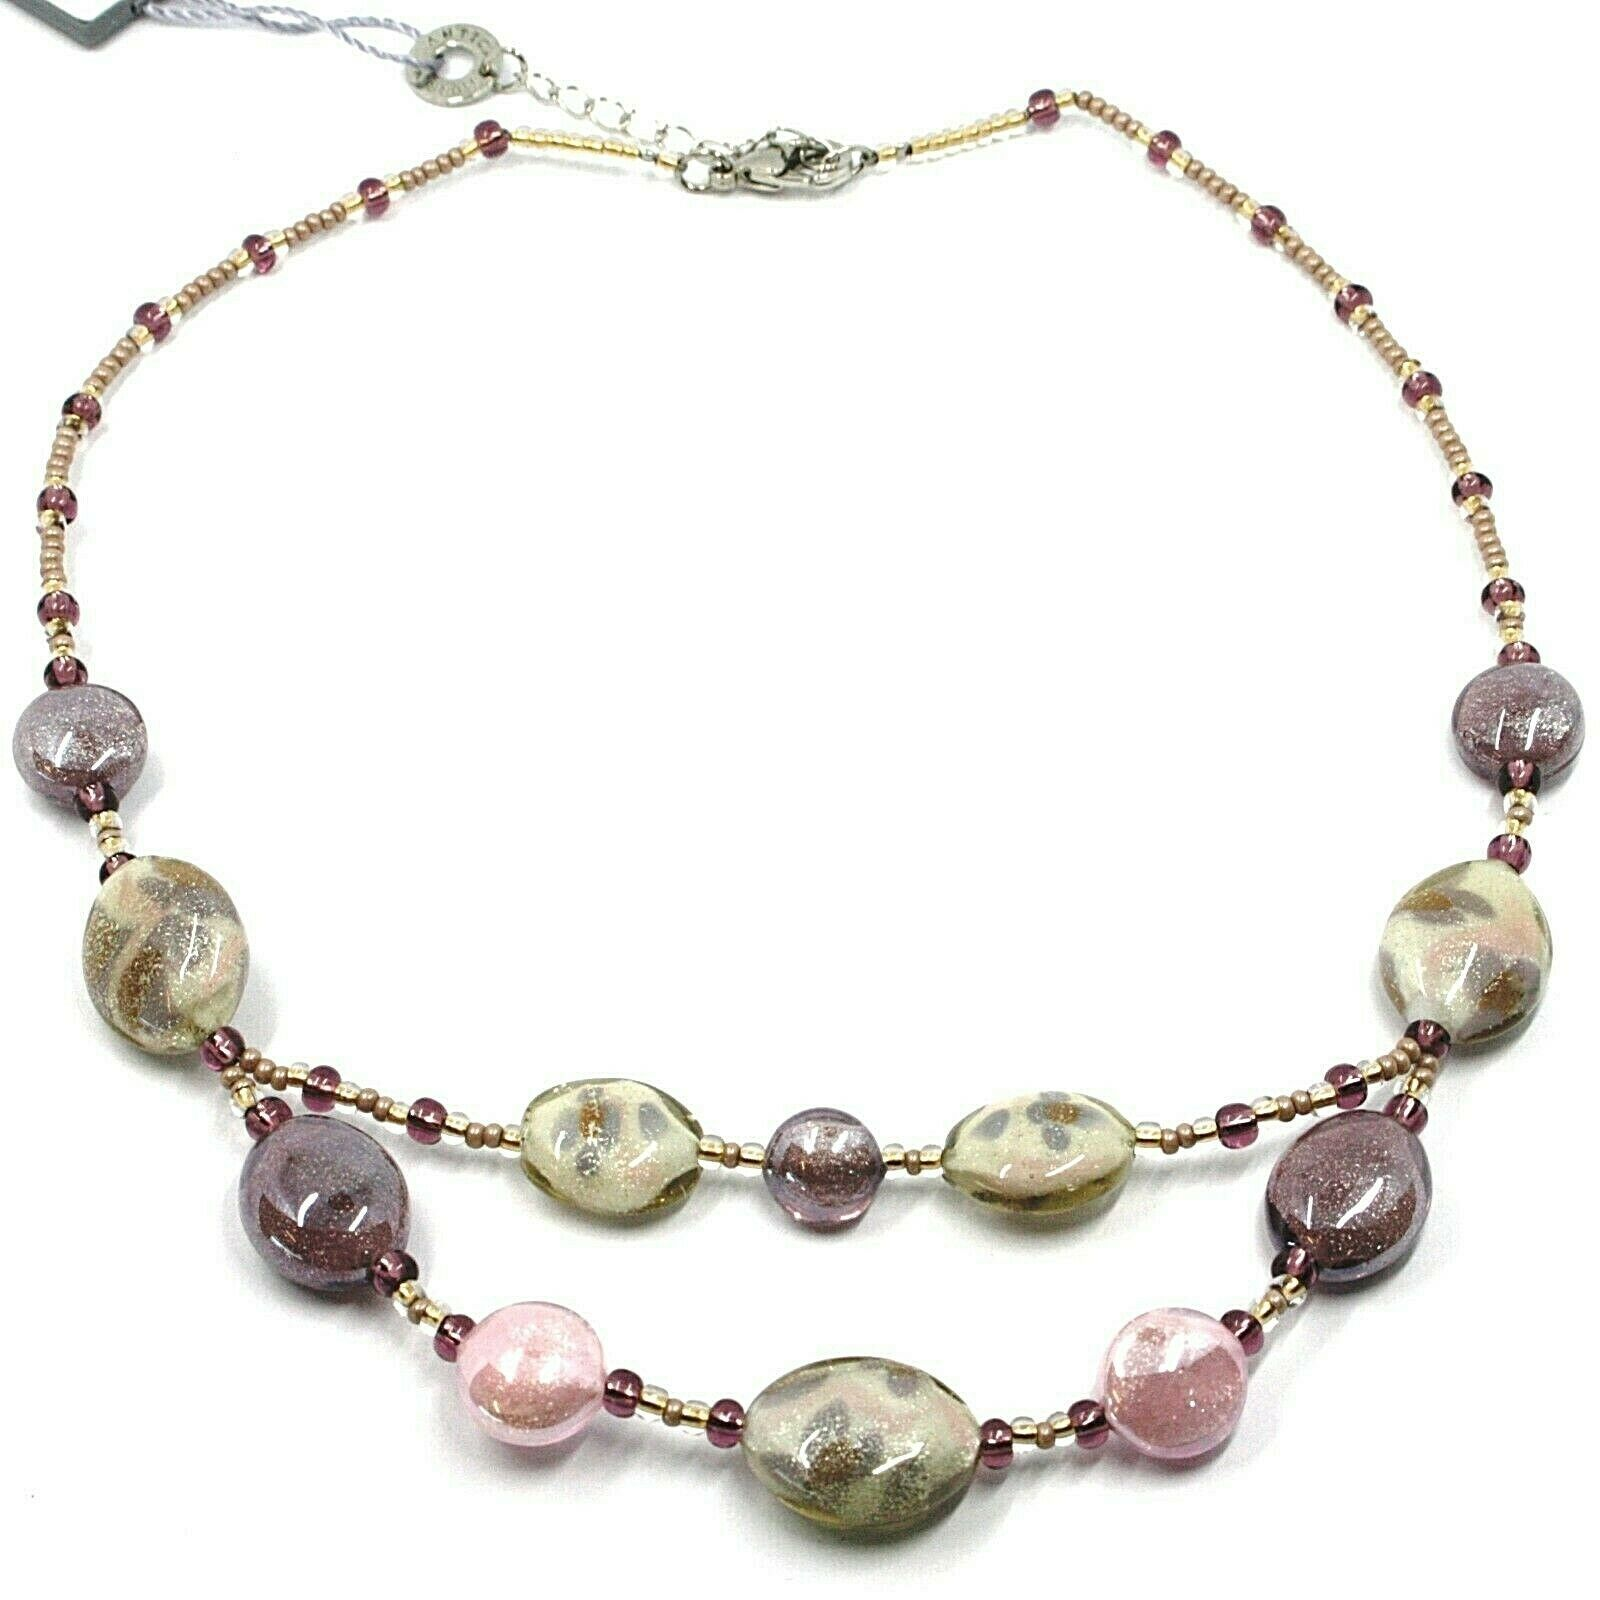 Necklace Antica Murrina Venezia, CO996A03, Ovals Purple, with Flowers,Twin Wire